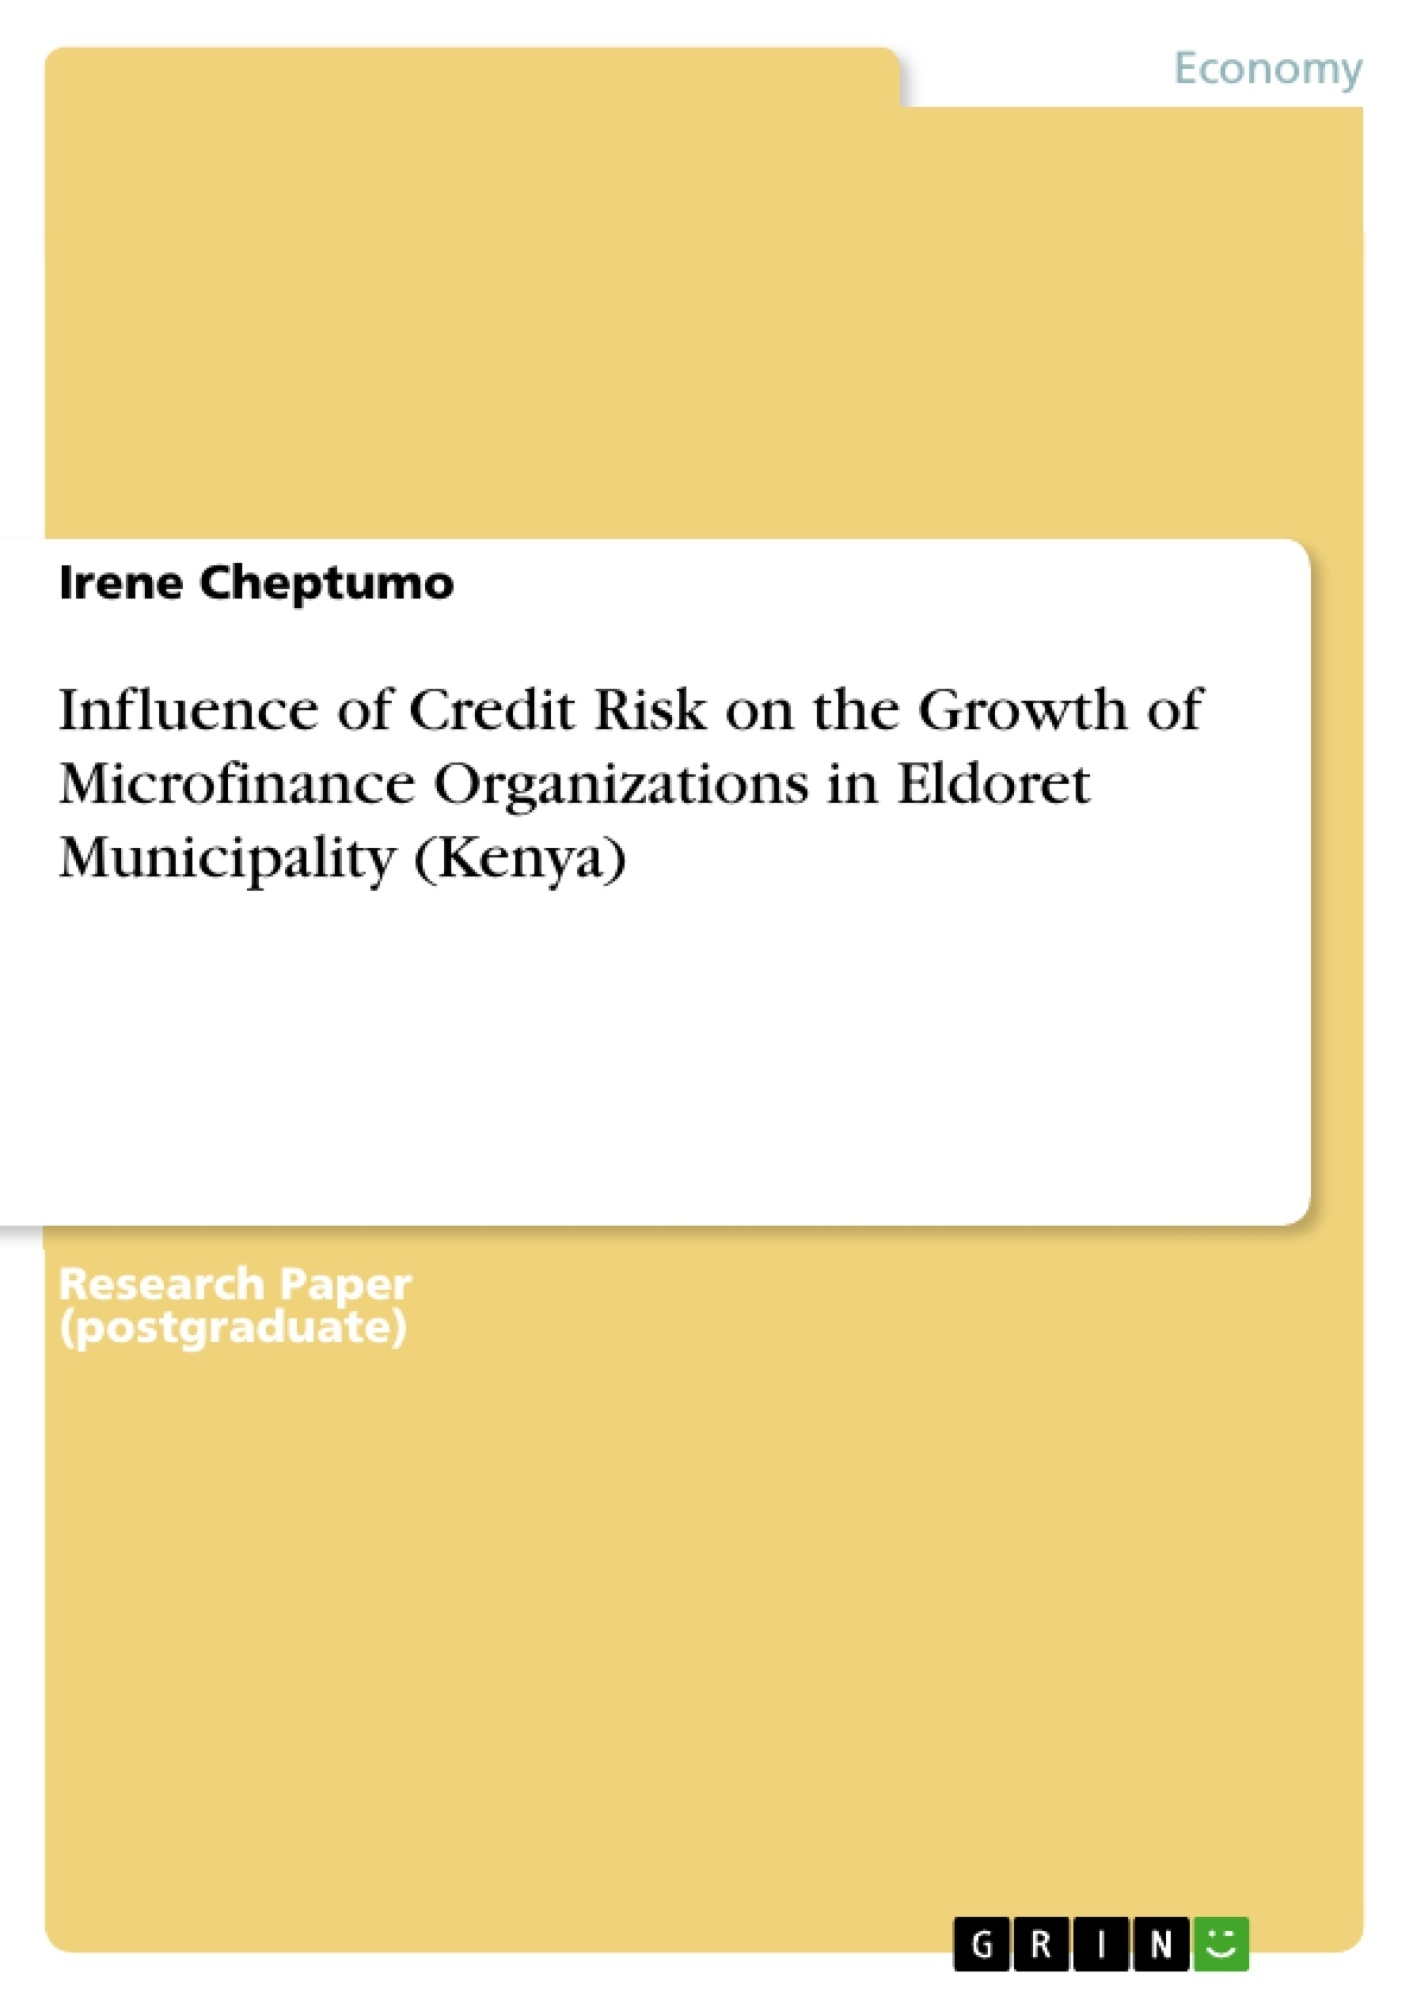 Title: Influence of Credit Risk on the Growth of Microfinance Organizations in Eldoret Municipality (Kenya)